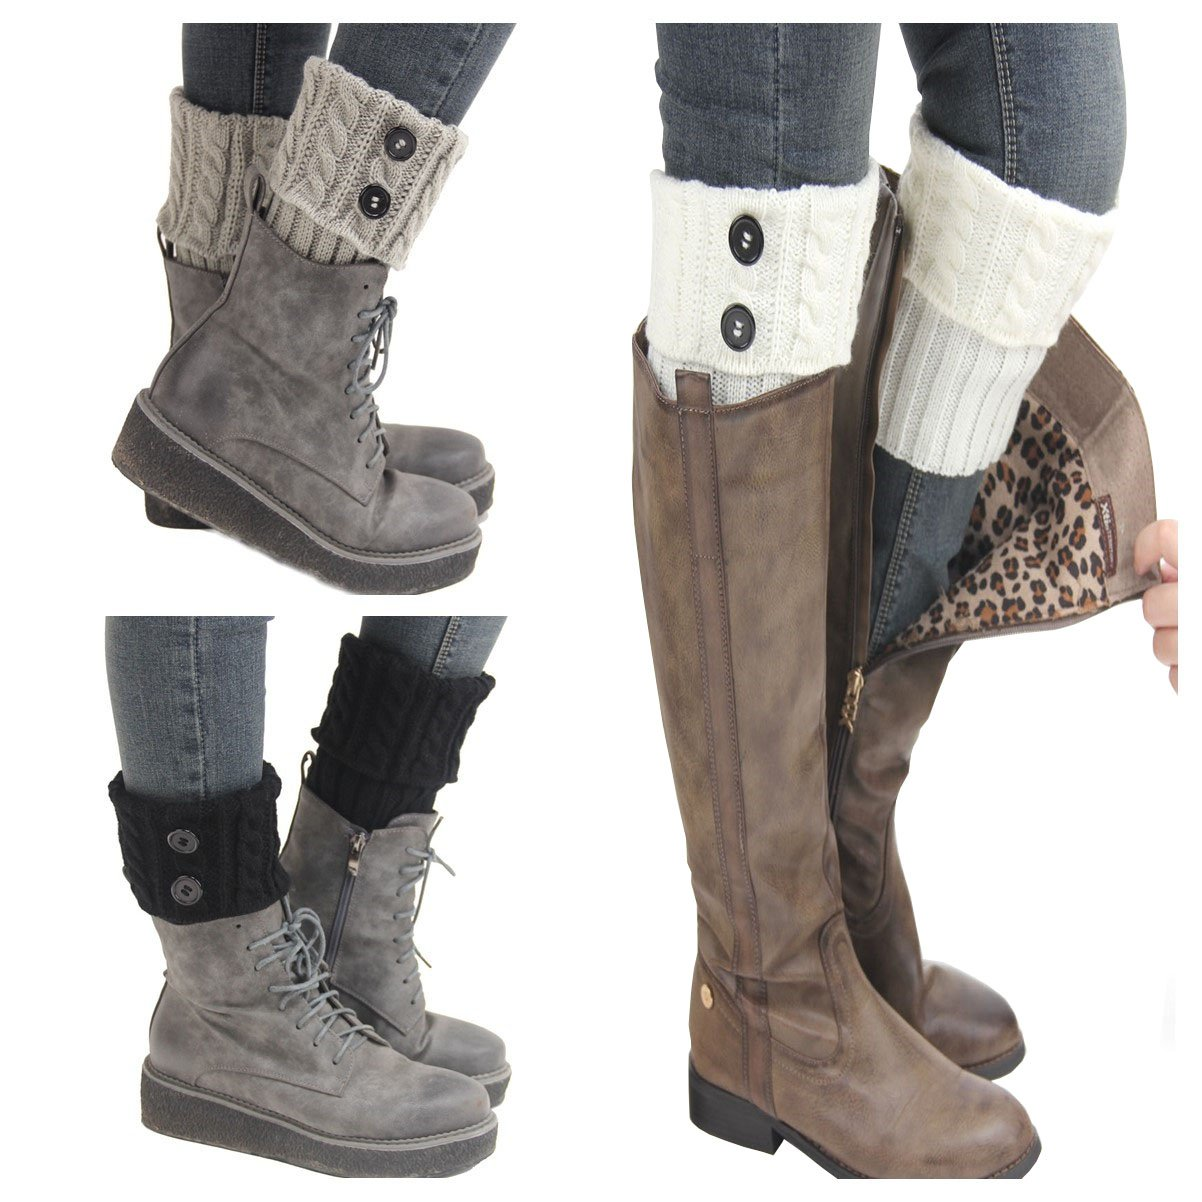 Santwo Women Winter Warm Crochet Knitted Boot Cuff Sock Short Leg Warmer 3 Pairs YF0063-1